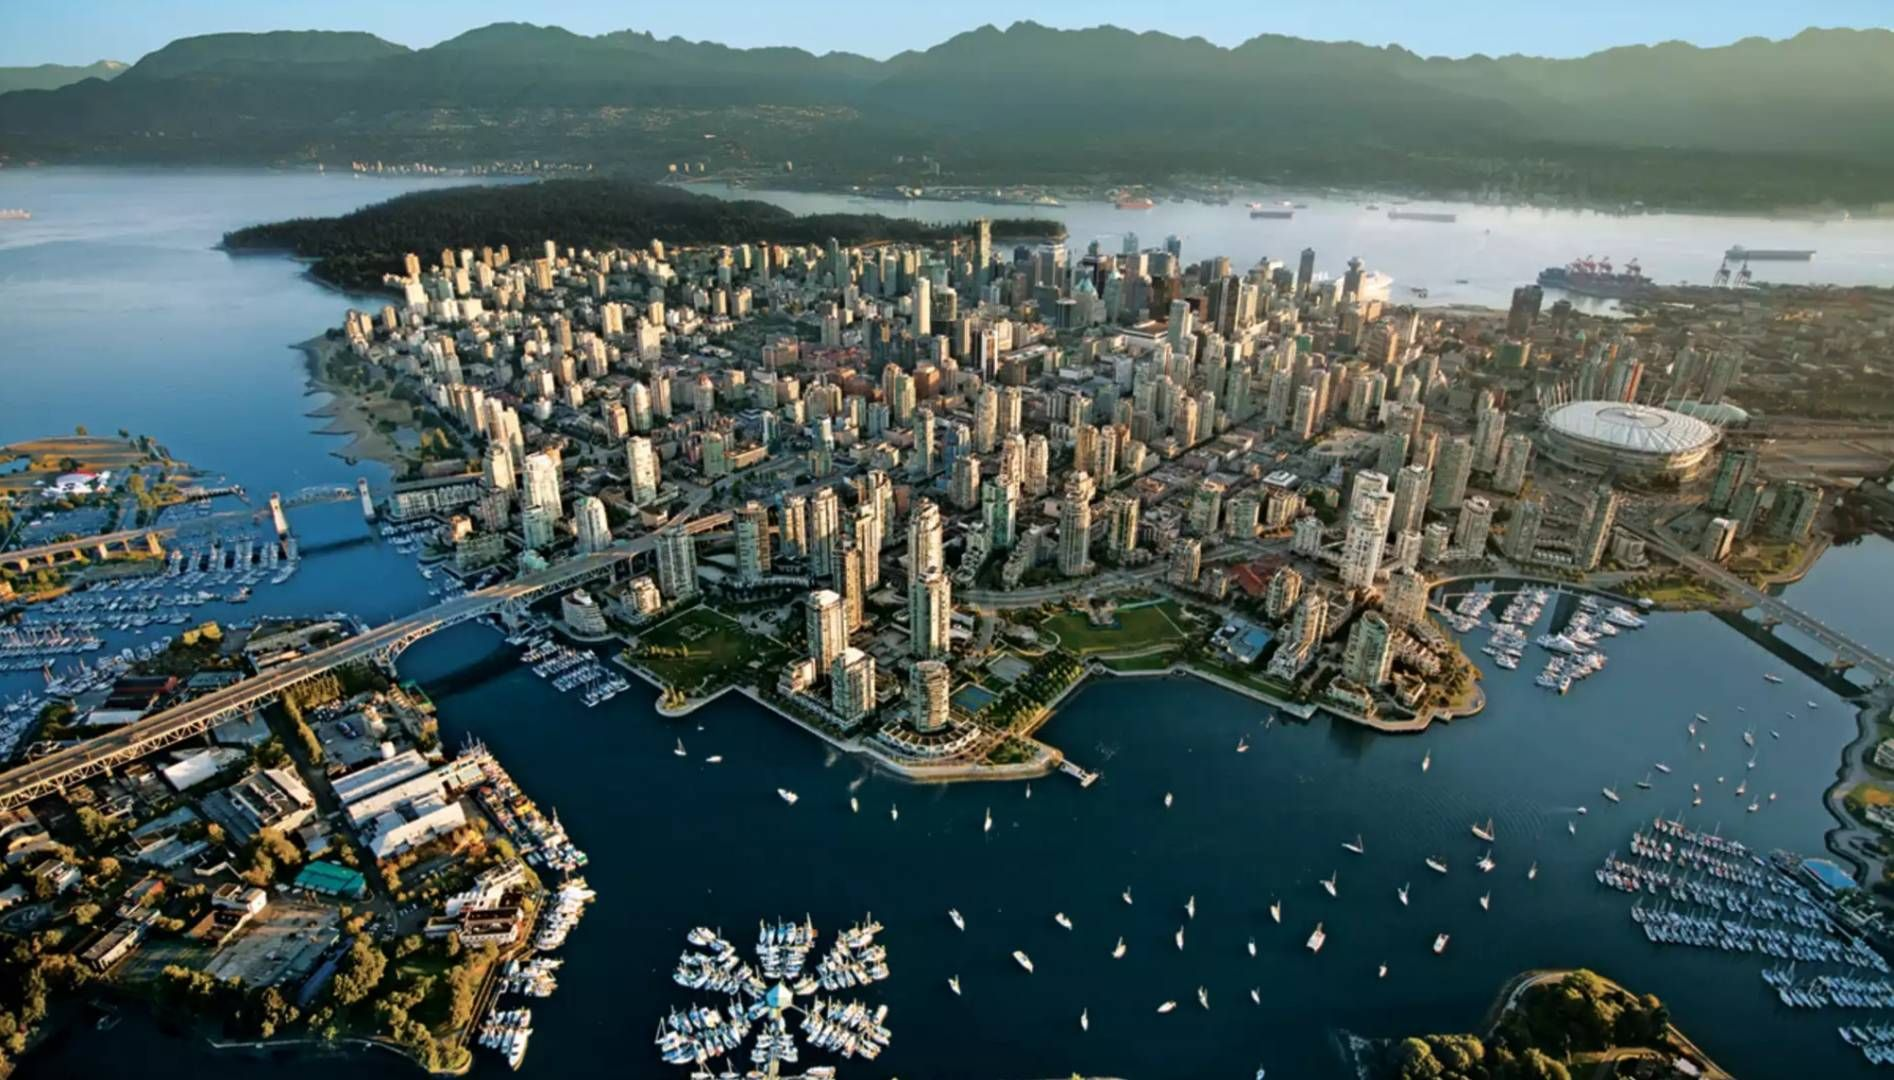 Vancouver voted by millions of travellers as top destination in Canada